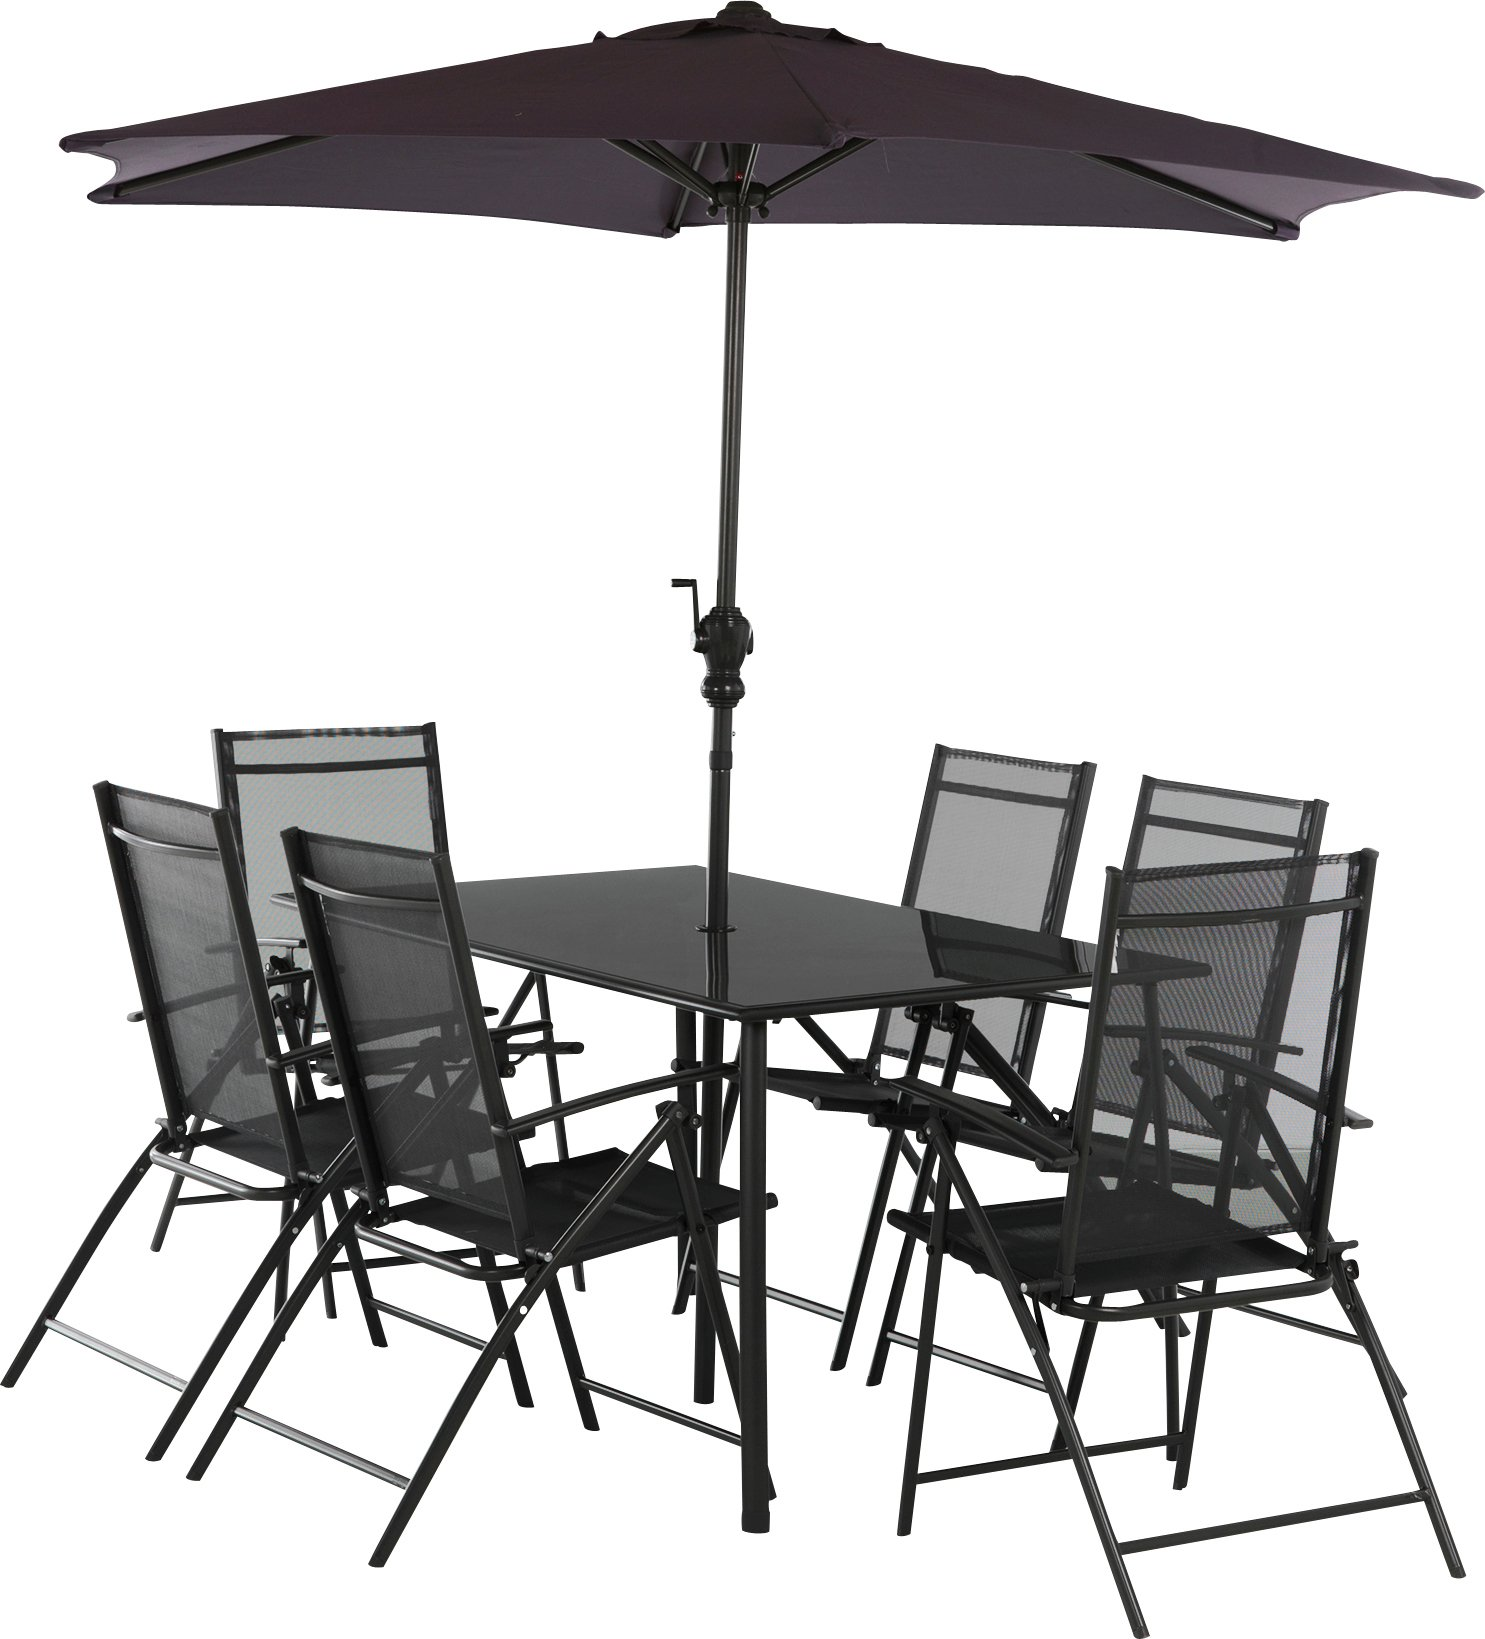 Buy HOME Milan 6 Seater Patio Set At Argos.co.uk   Your Online Shop For Garden  Table And Chair Sets, Garden Furniture, Home And Garden.